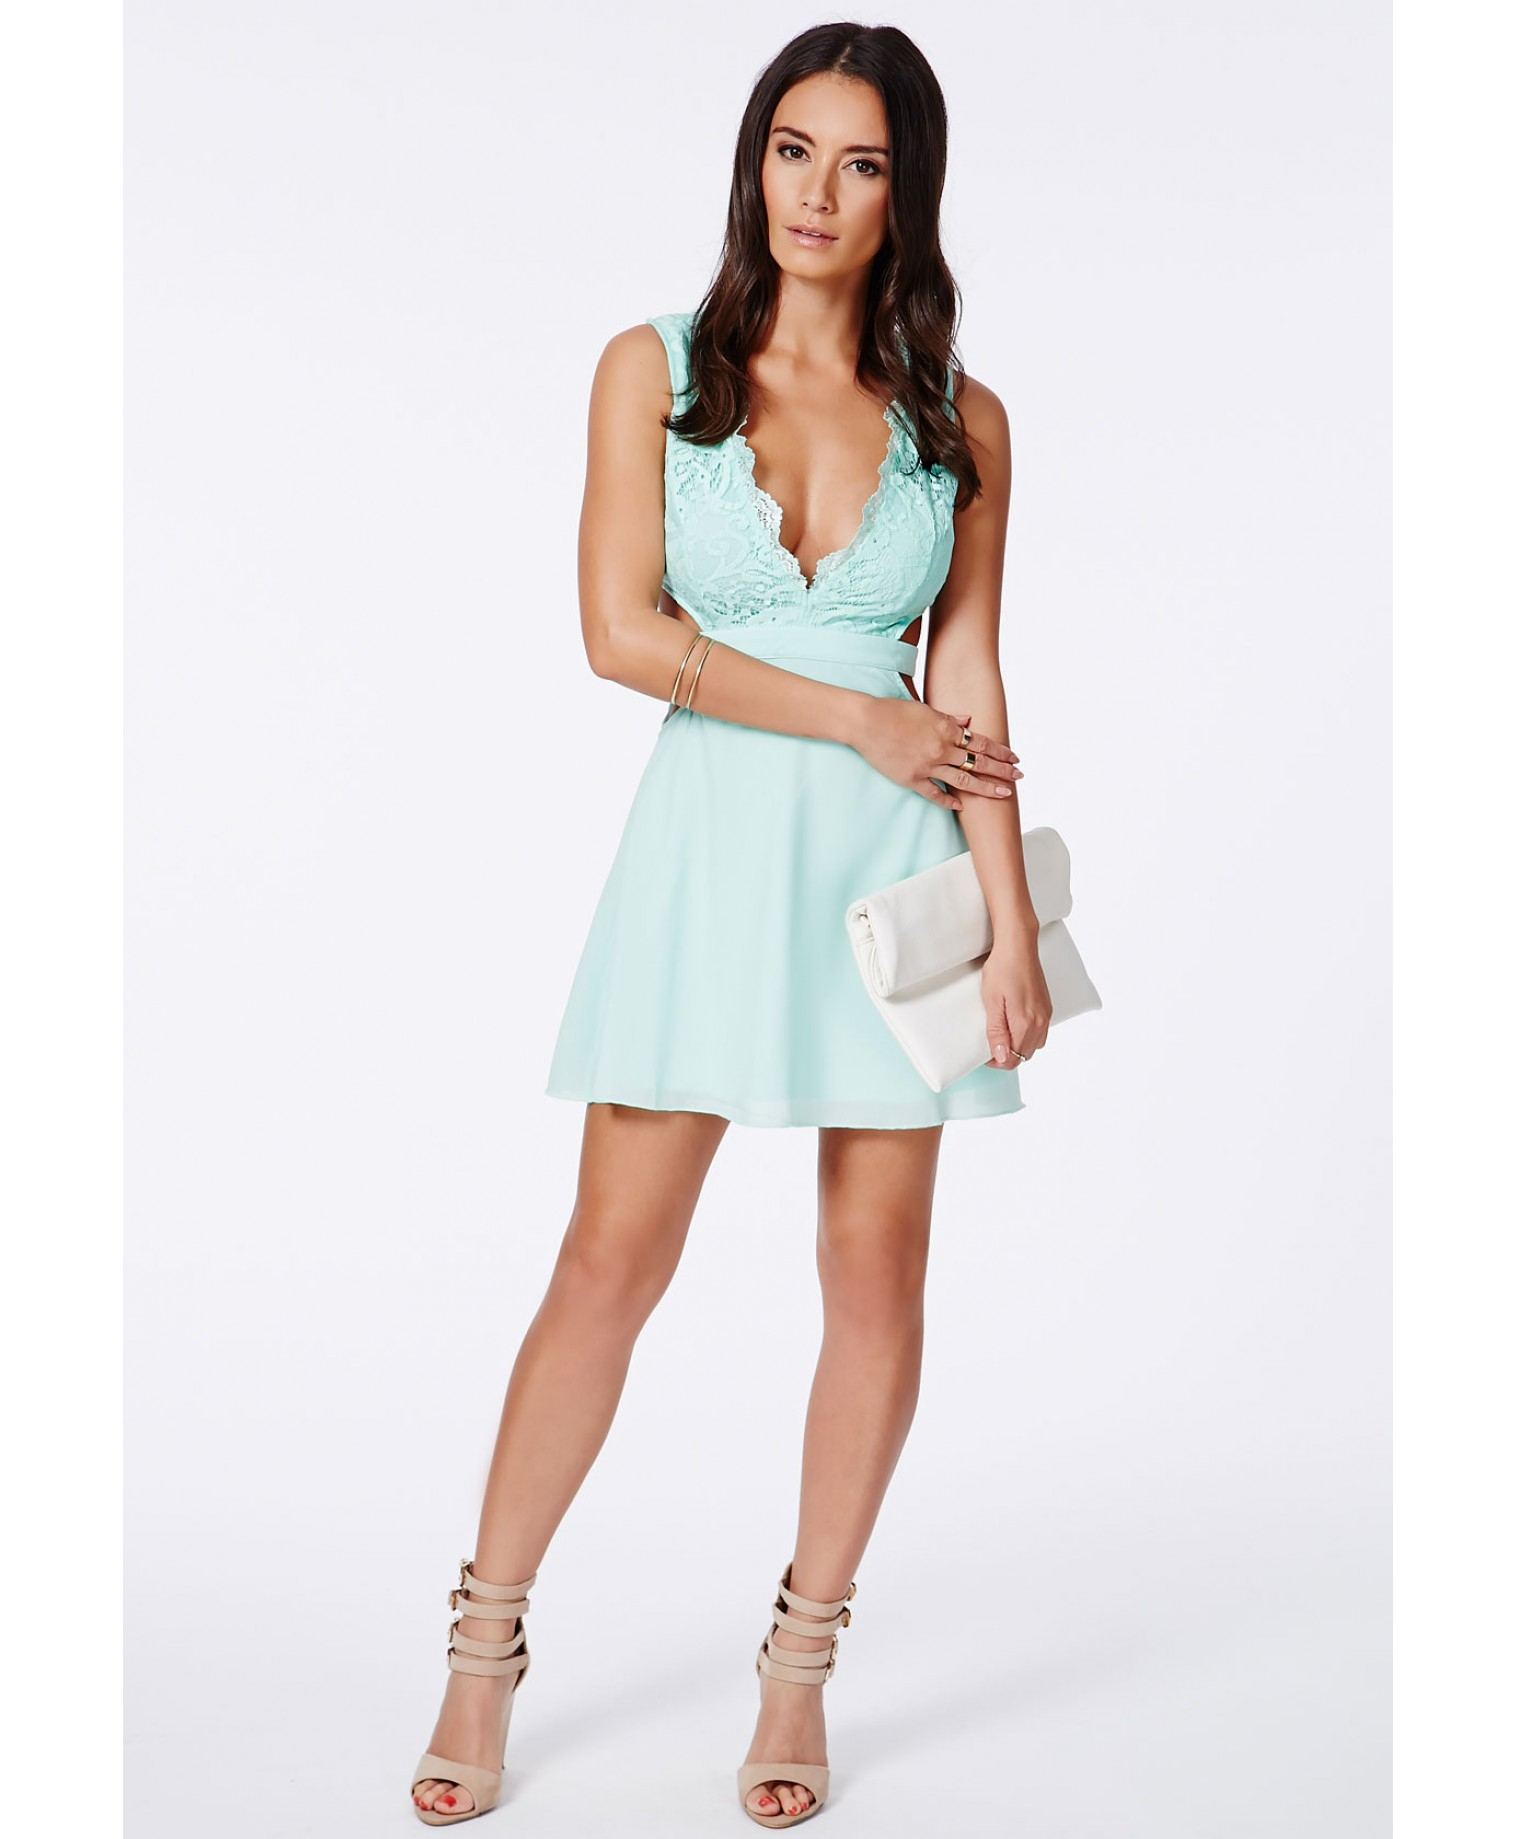 461b098dd7 Missguided Roksy Mint Lace Plunge Cut Out Dress in Blue - Lyst